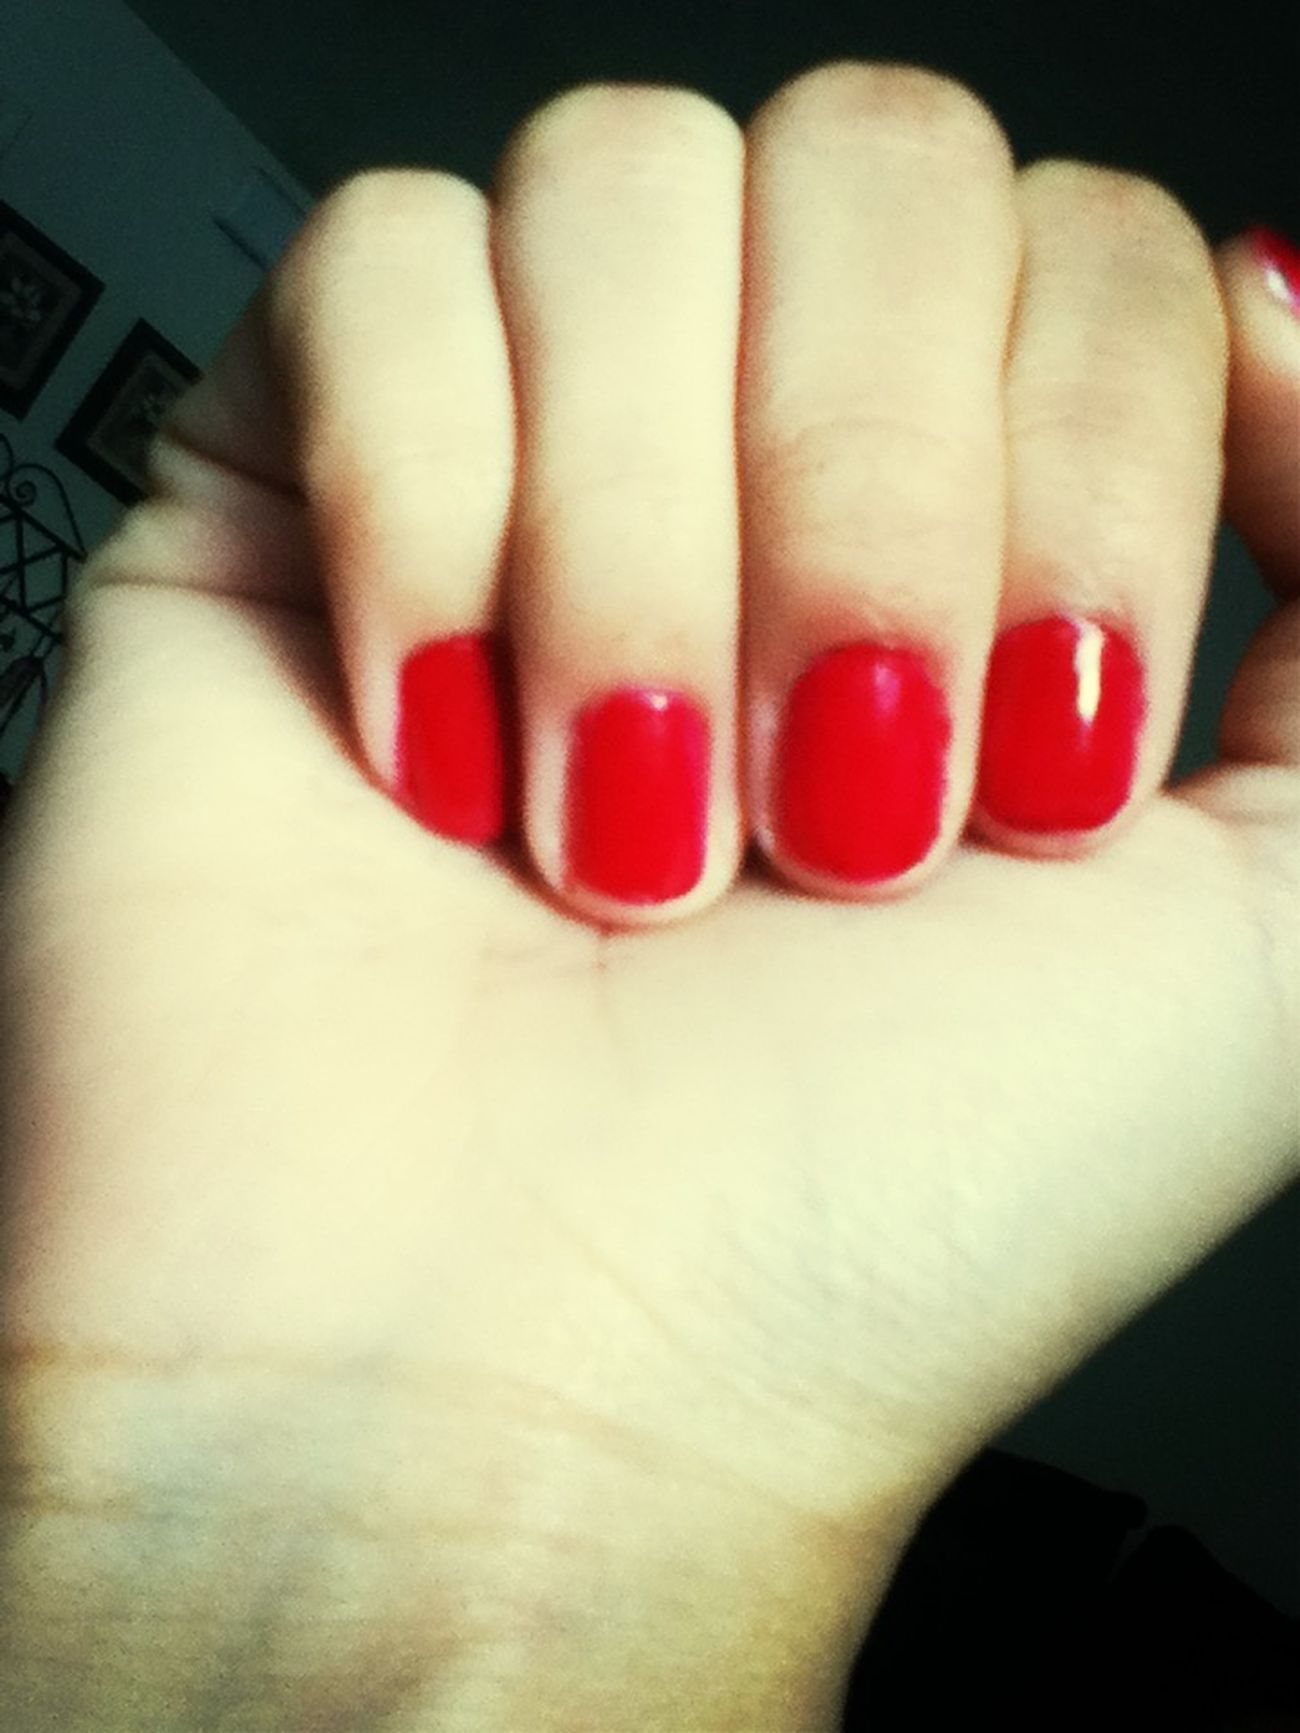 Redd Nails ; New Years ^.^